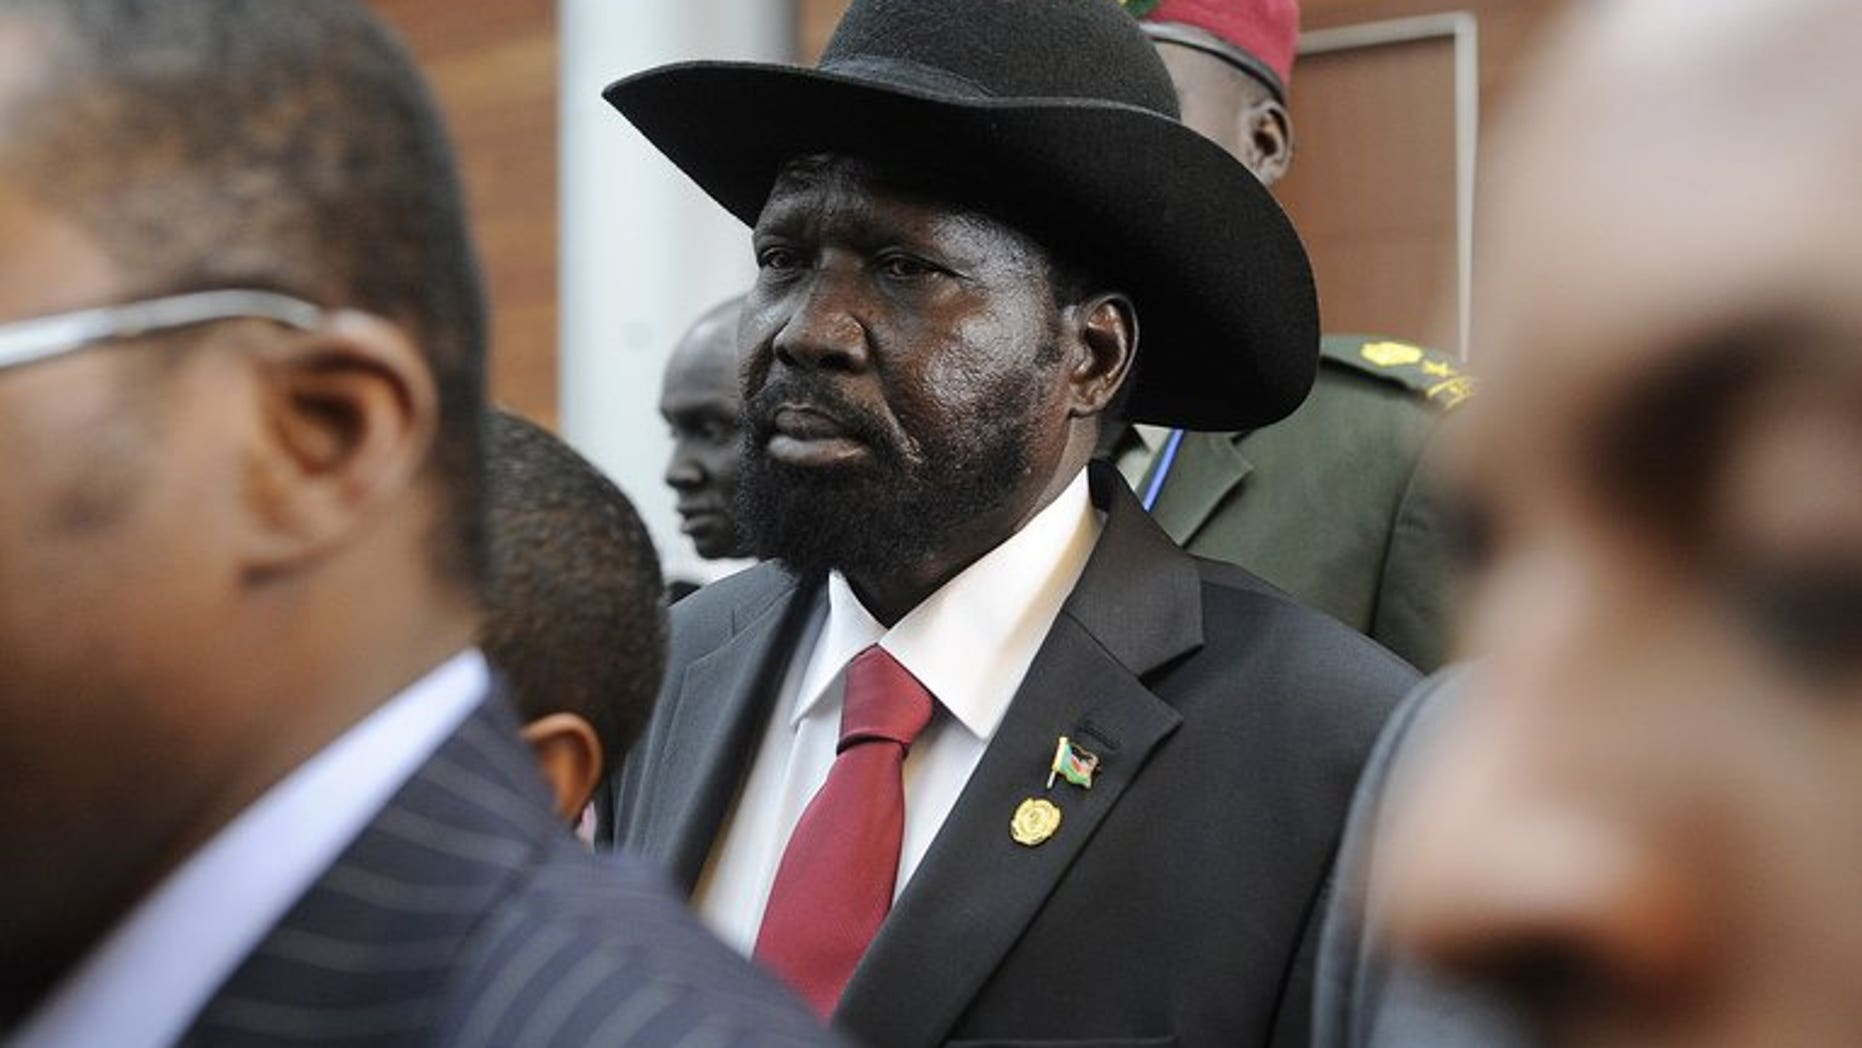 South Sudan President Salva Kiir arrives at a summit in Addis Ababa, Ethiopia, on May 26, 2013. President Kiir named his new cabinet Wednesday after sacking his entire team last week, but has yet to appoint a vice president.